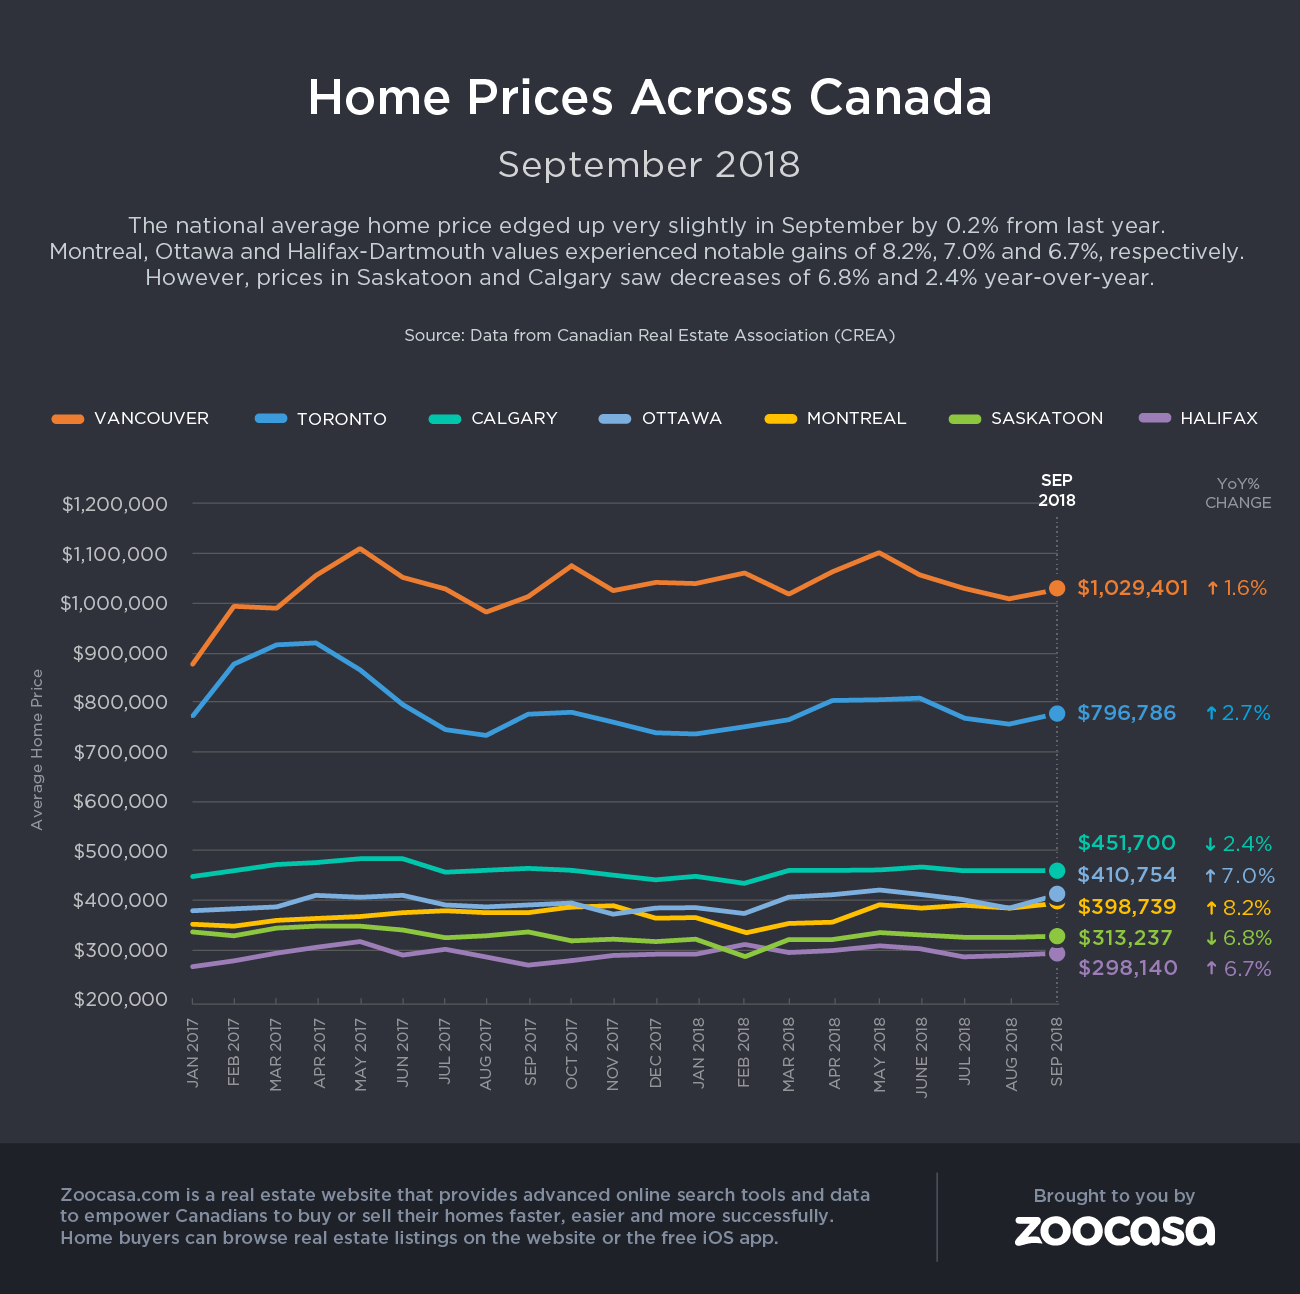 crea home prices